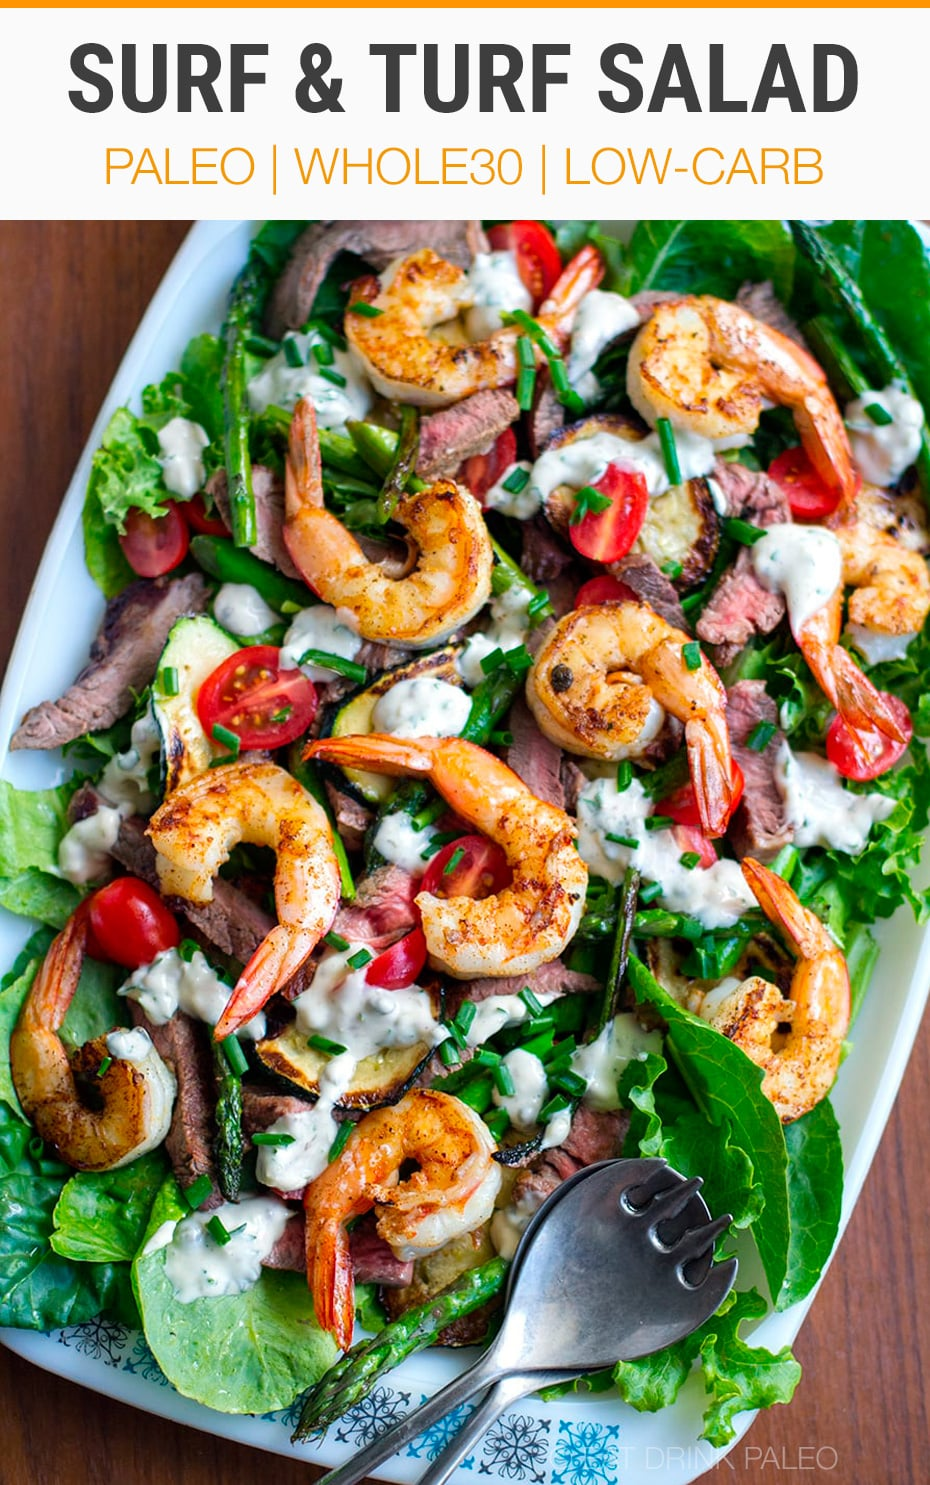 Surf & Turf Salad - Made with grilled steak, shrimp and creamy garlic dressing. This steak salad recipe is paleo, Whole30, gluten-free and keto friendly. #surfturf #salad #steak #prawns #shrimp #whole30 #paleo #keto #glutenfree